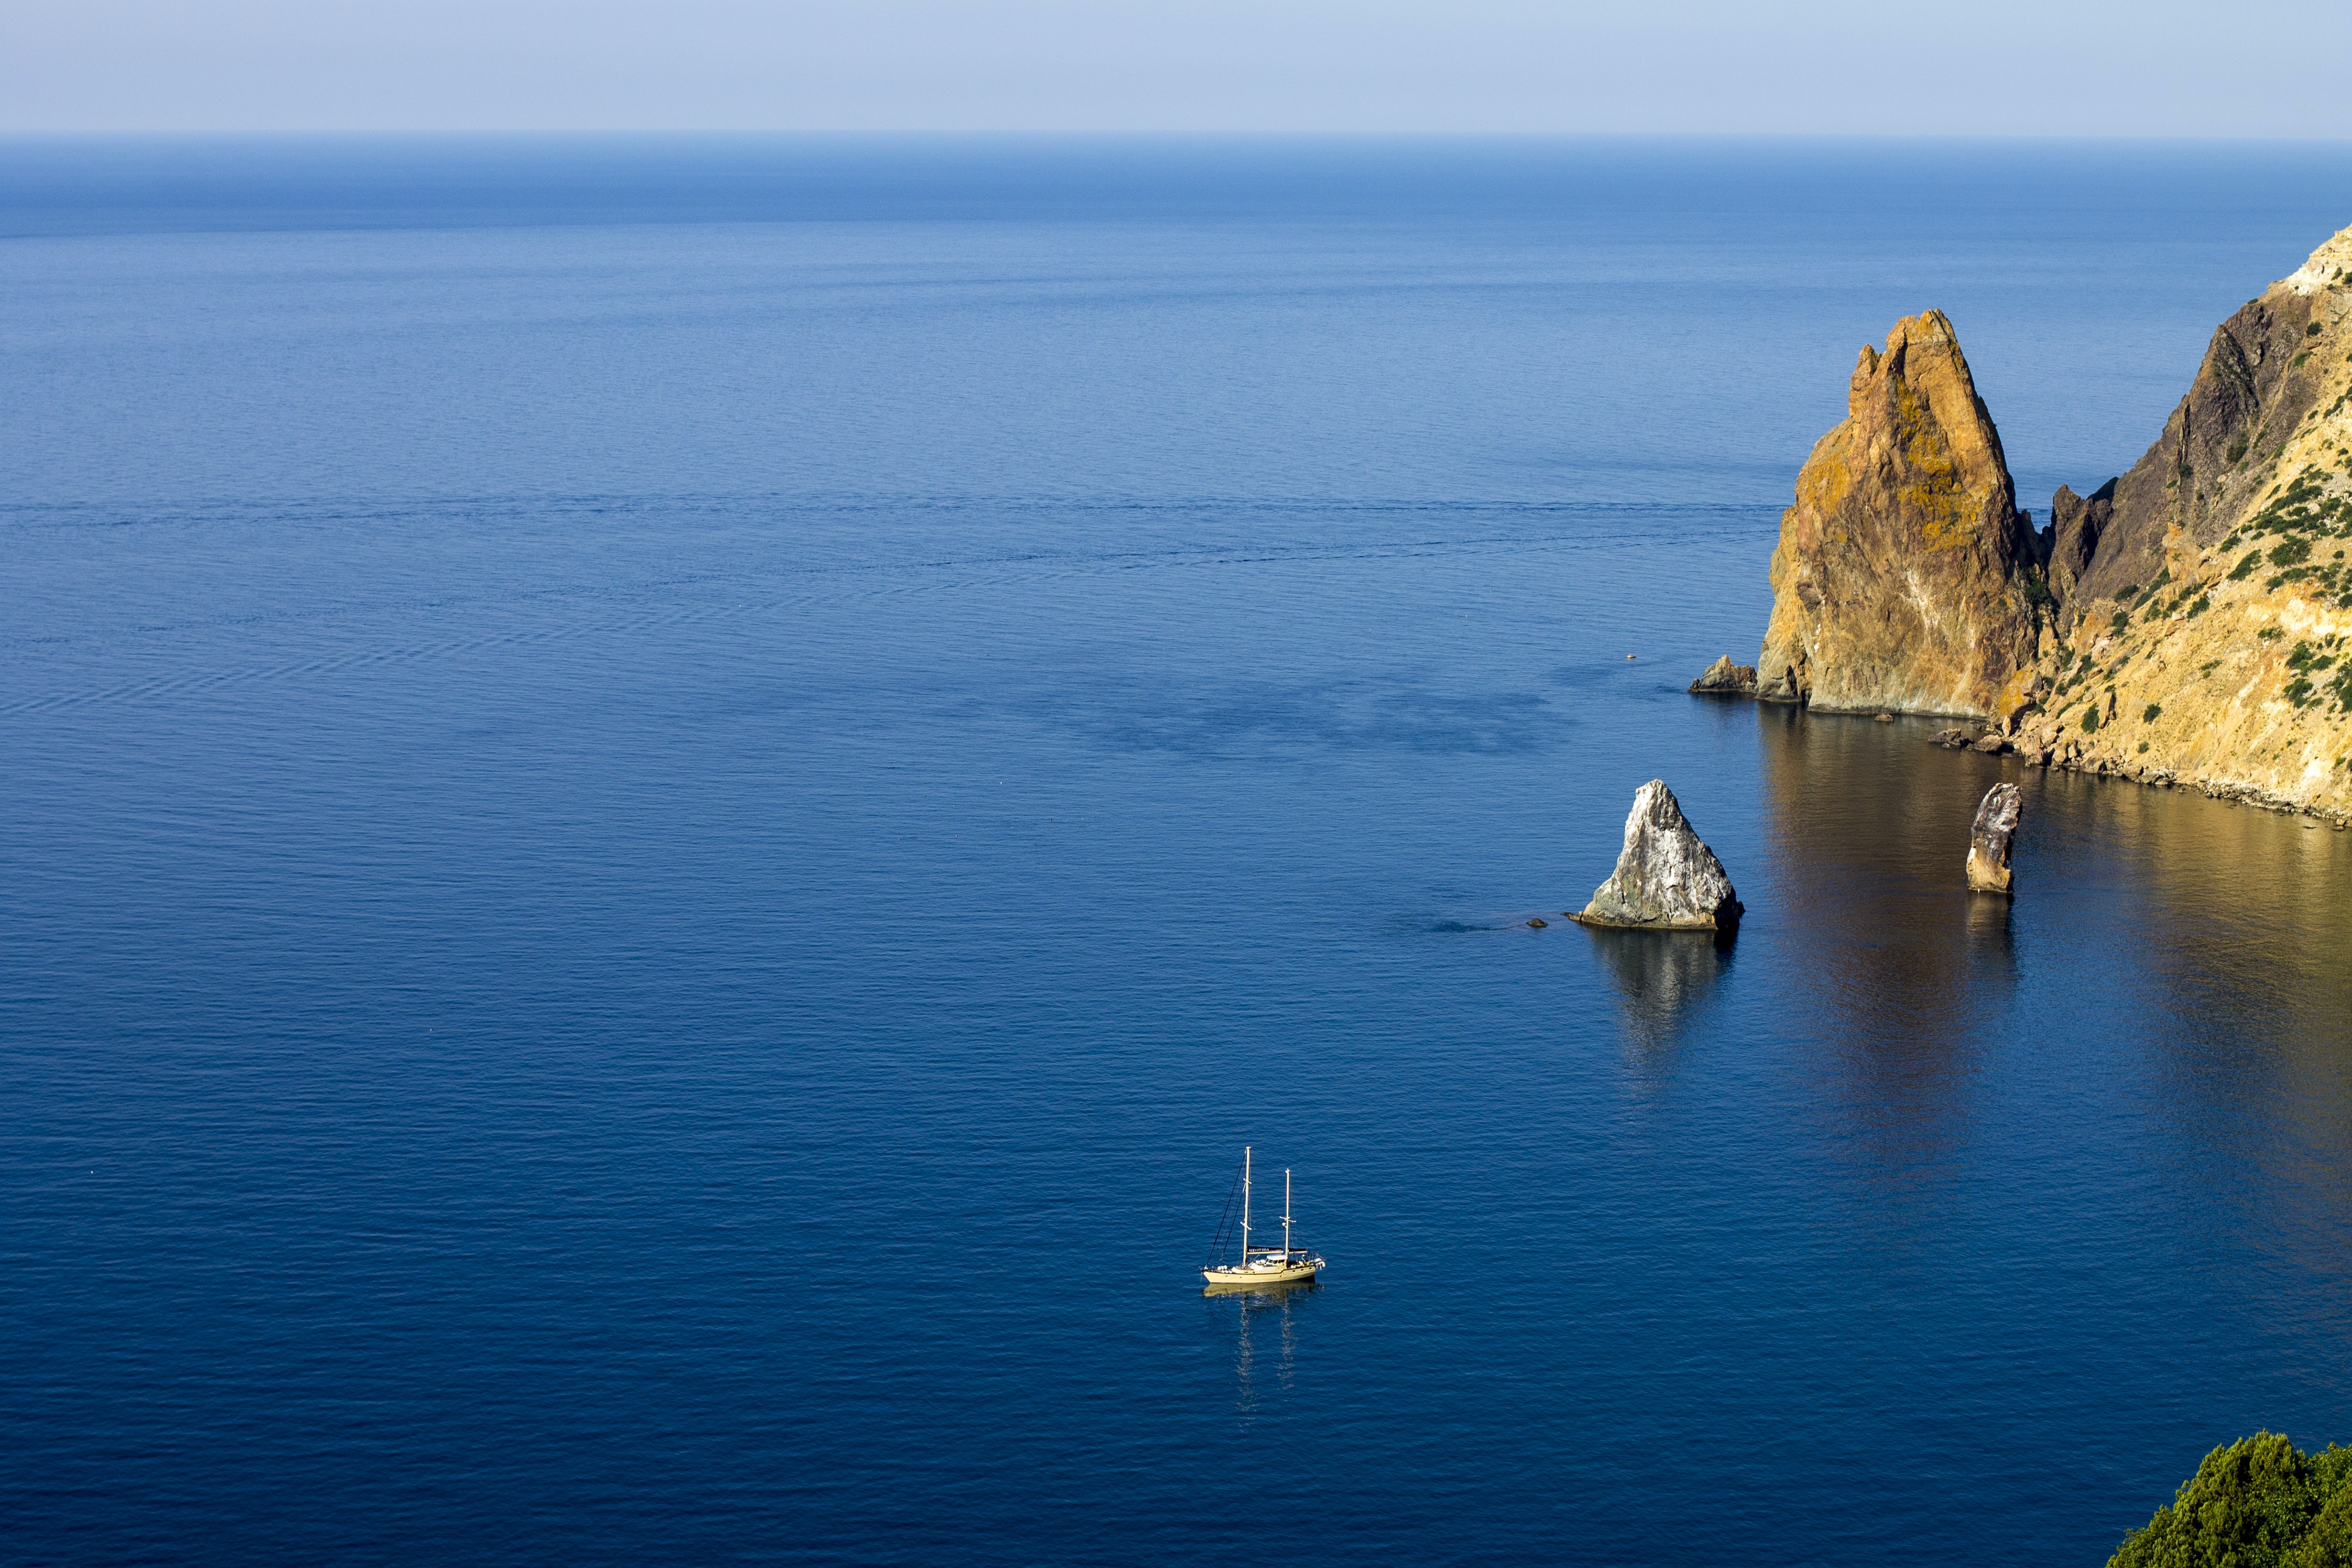 aerial photography of white ship on sea near rock formations under blue sky during daytime